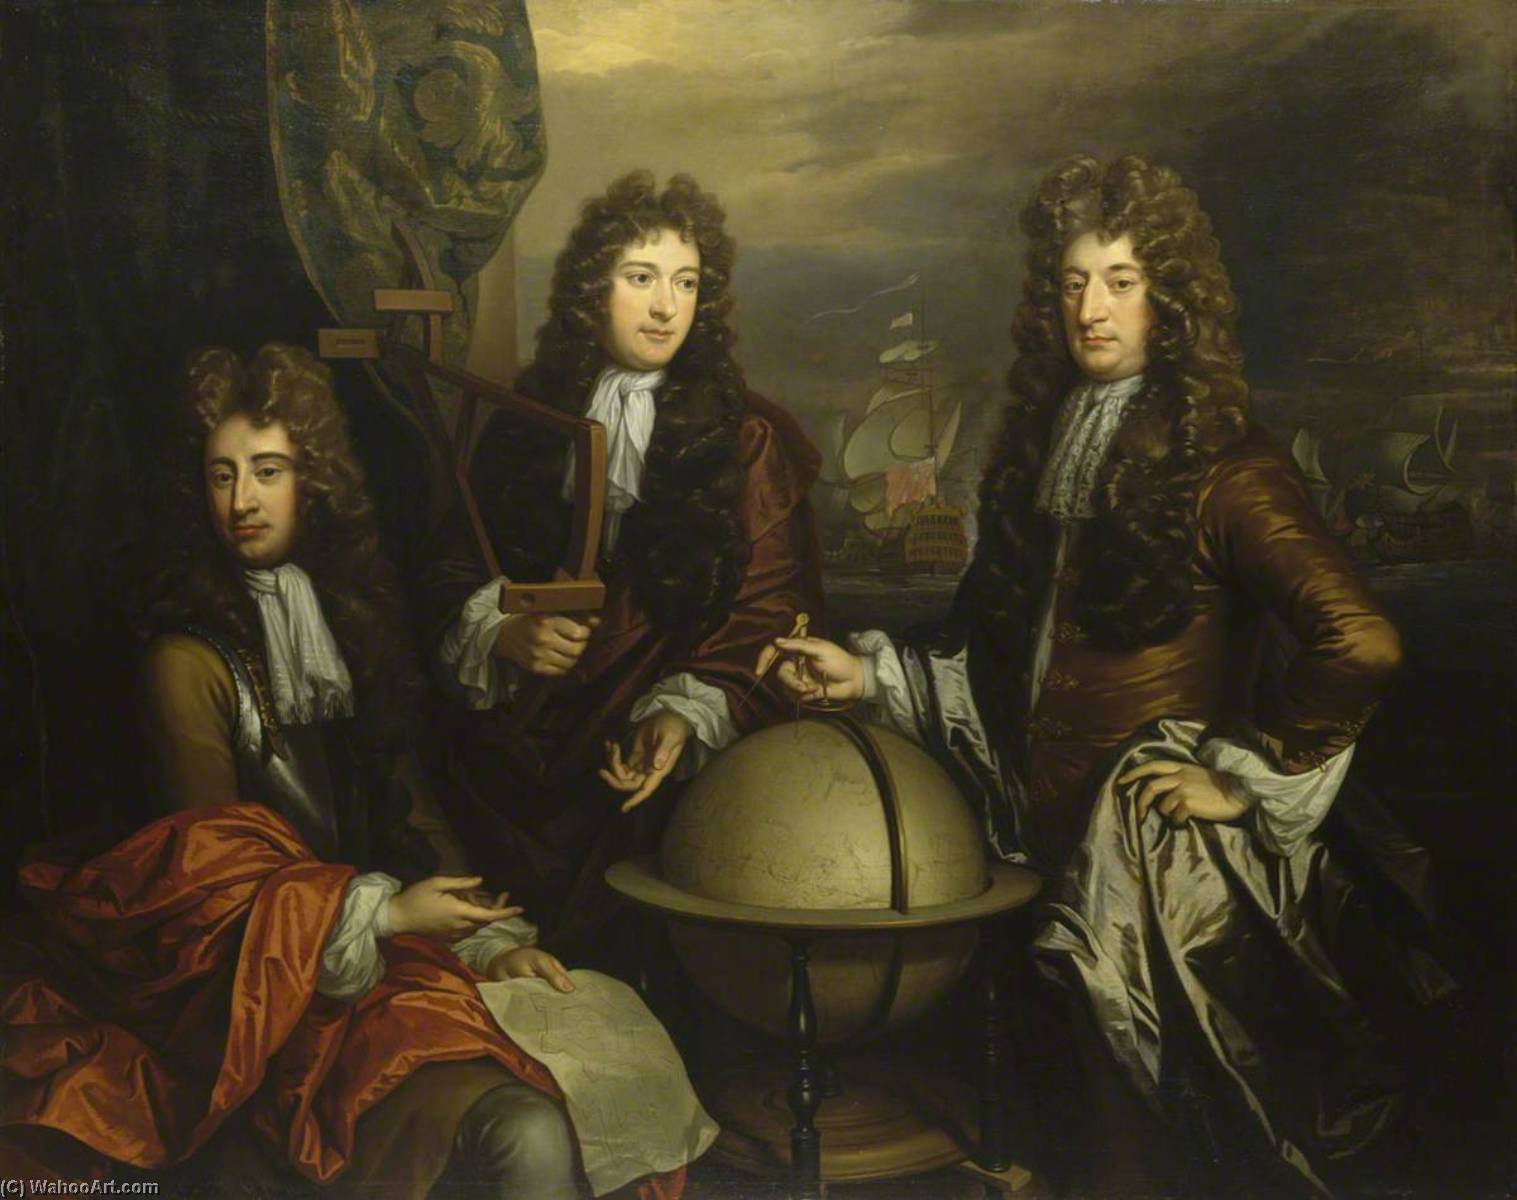 john benbow ( 1653–1702 ) , Señor ralph delavalle ( do . 1645–1707 ) , asícomo thomas phillips ( do . 1635–1693 ), óleo sobre lienzo de Thomas Murray